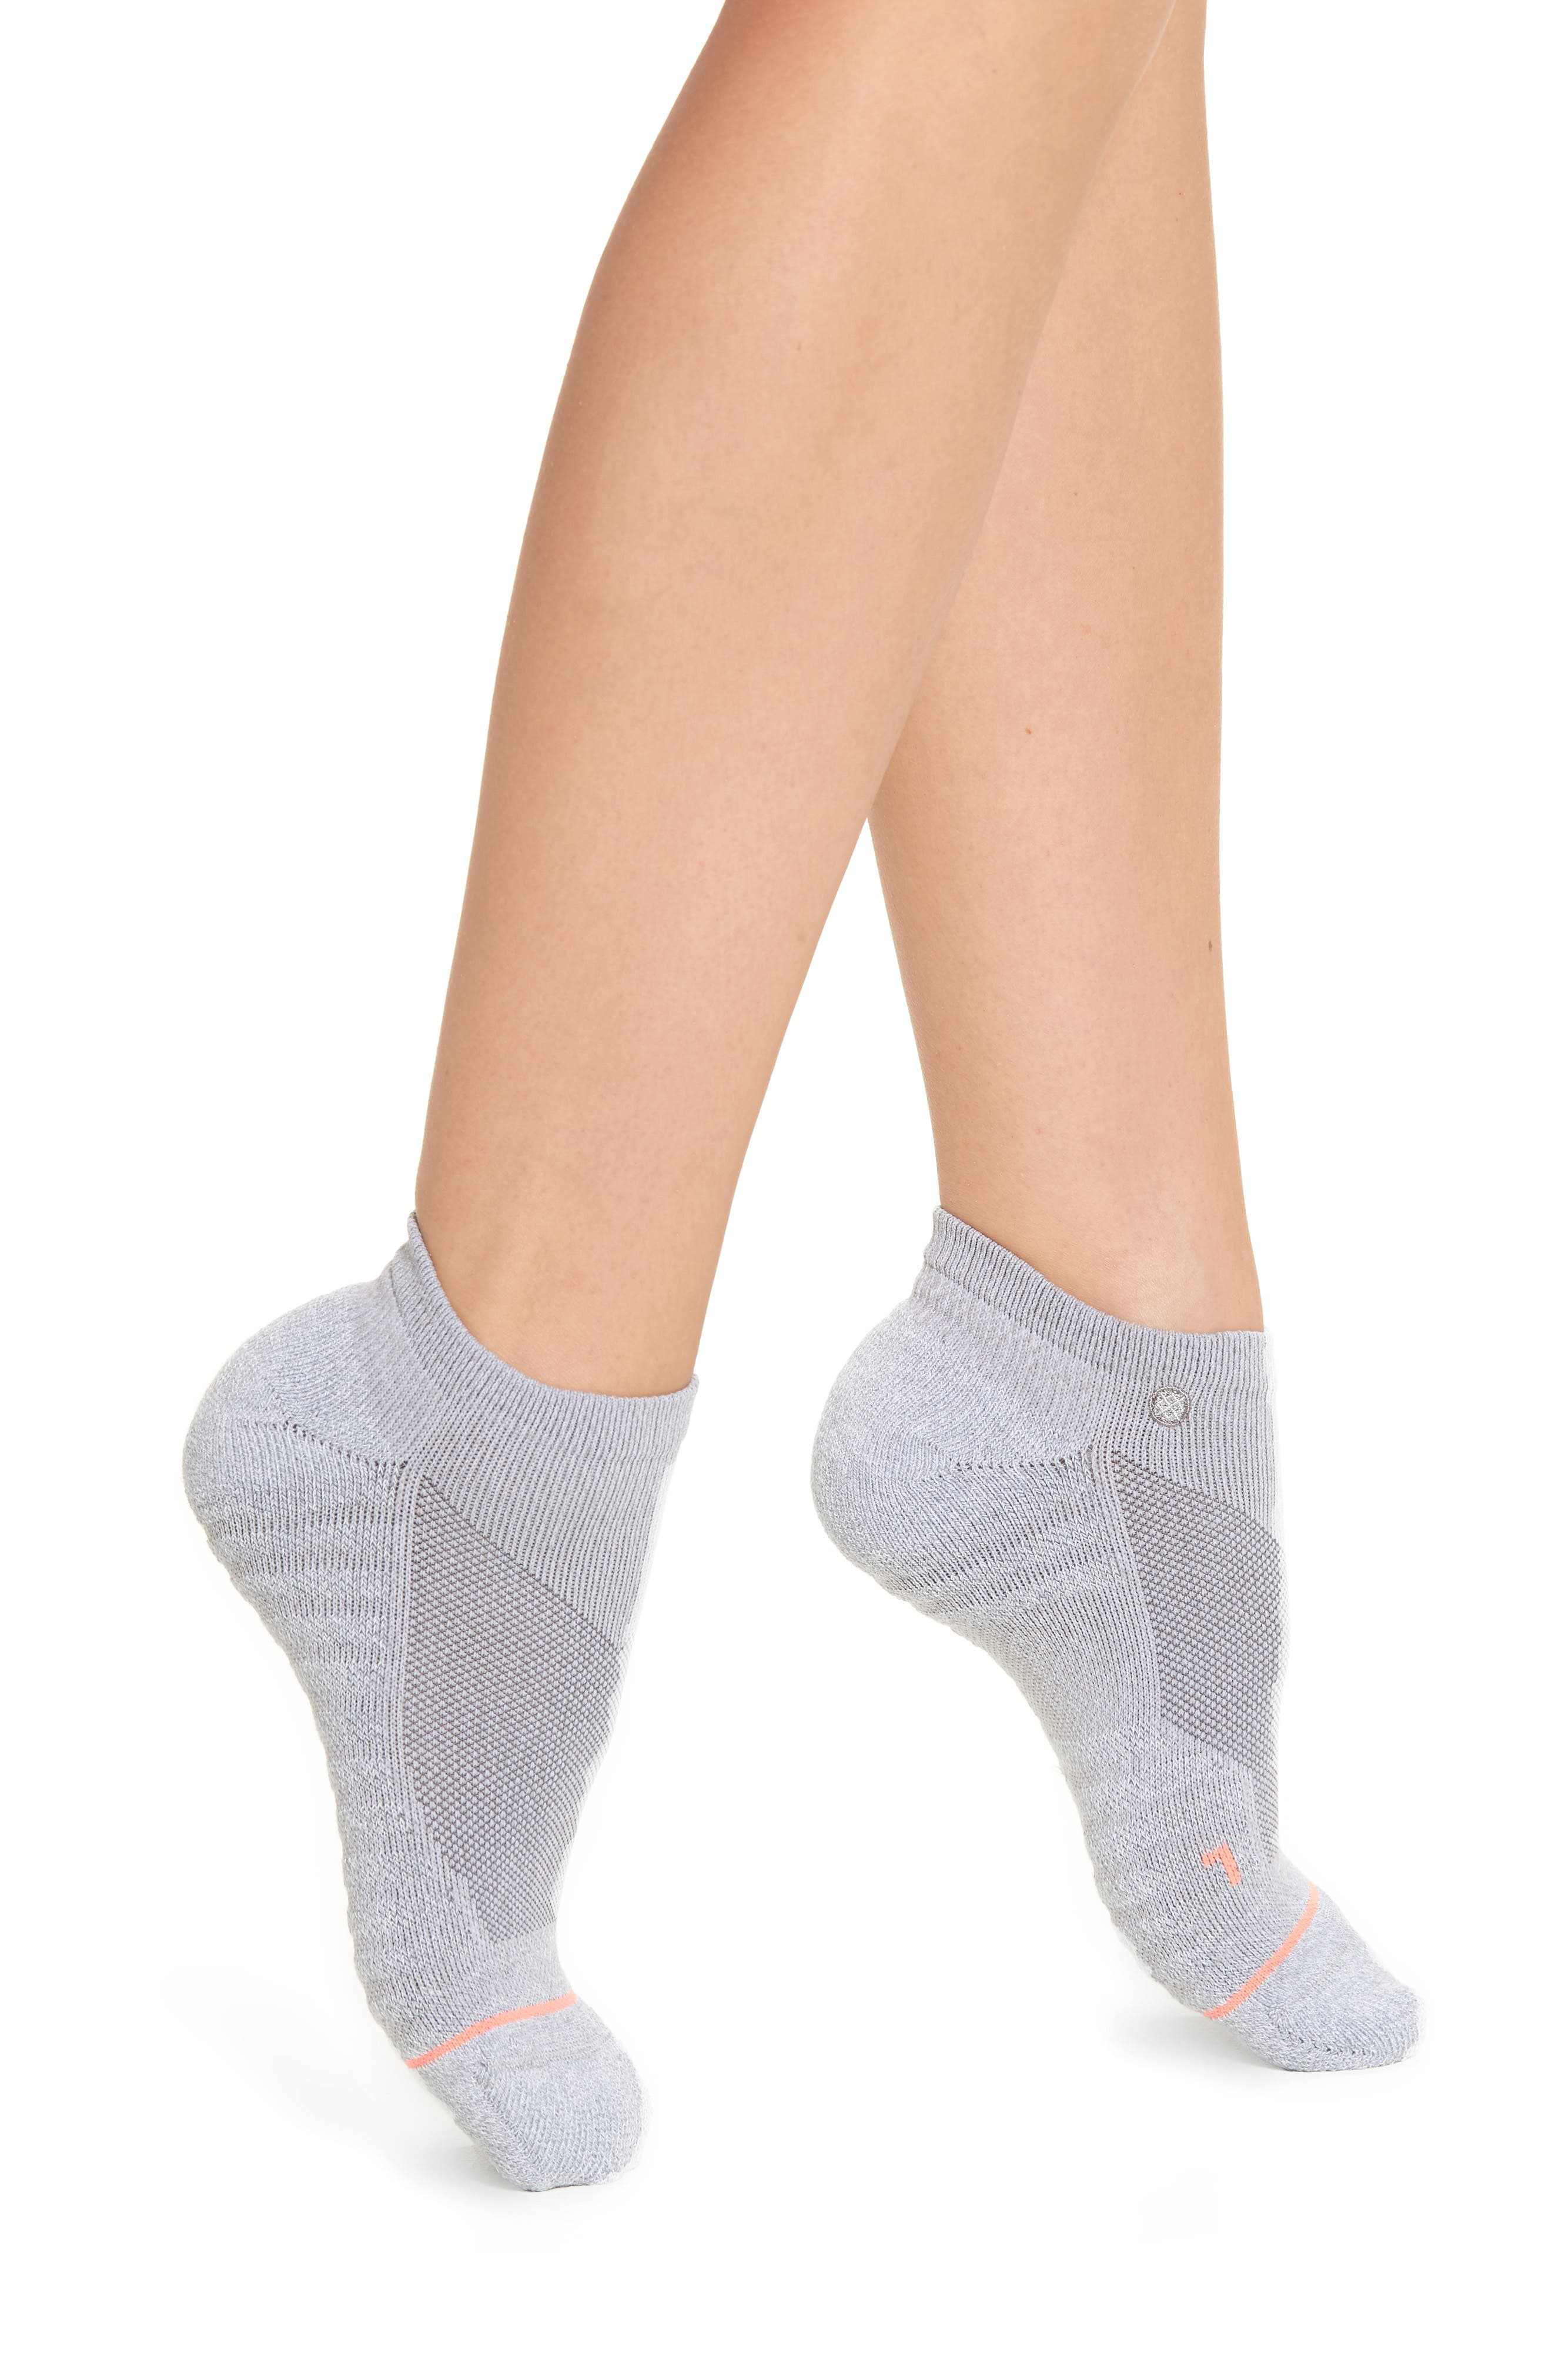 Icon Athletic Low Cut Socks,                         Main,                         color, 020